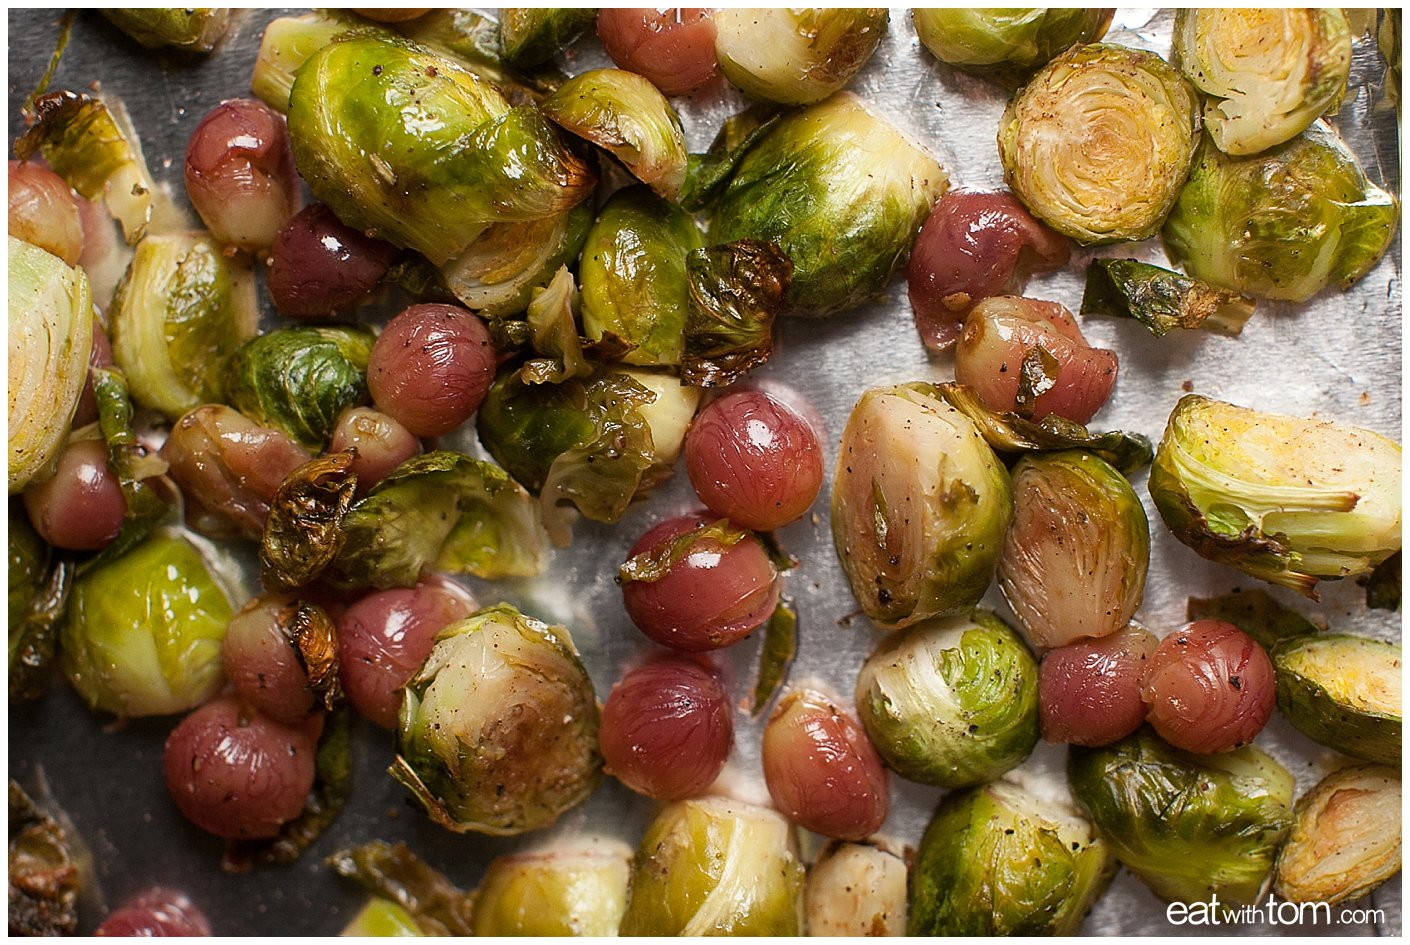 red seedless grapes with brussels sprouts healthy and delicious recipe by eat with tom